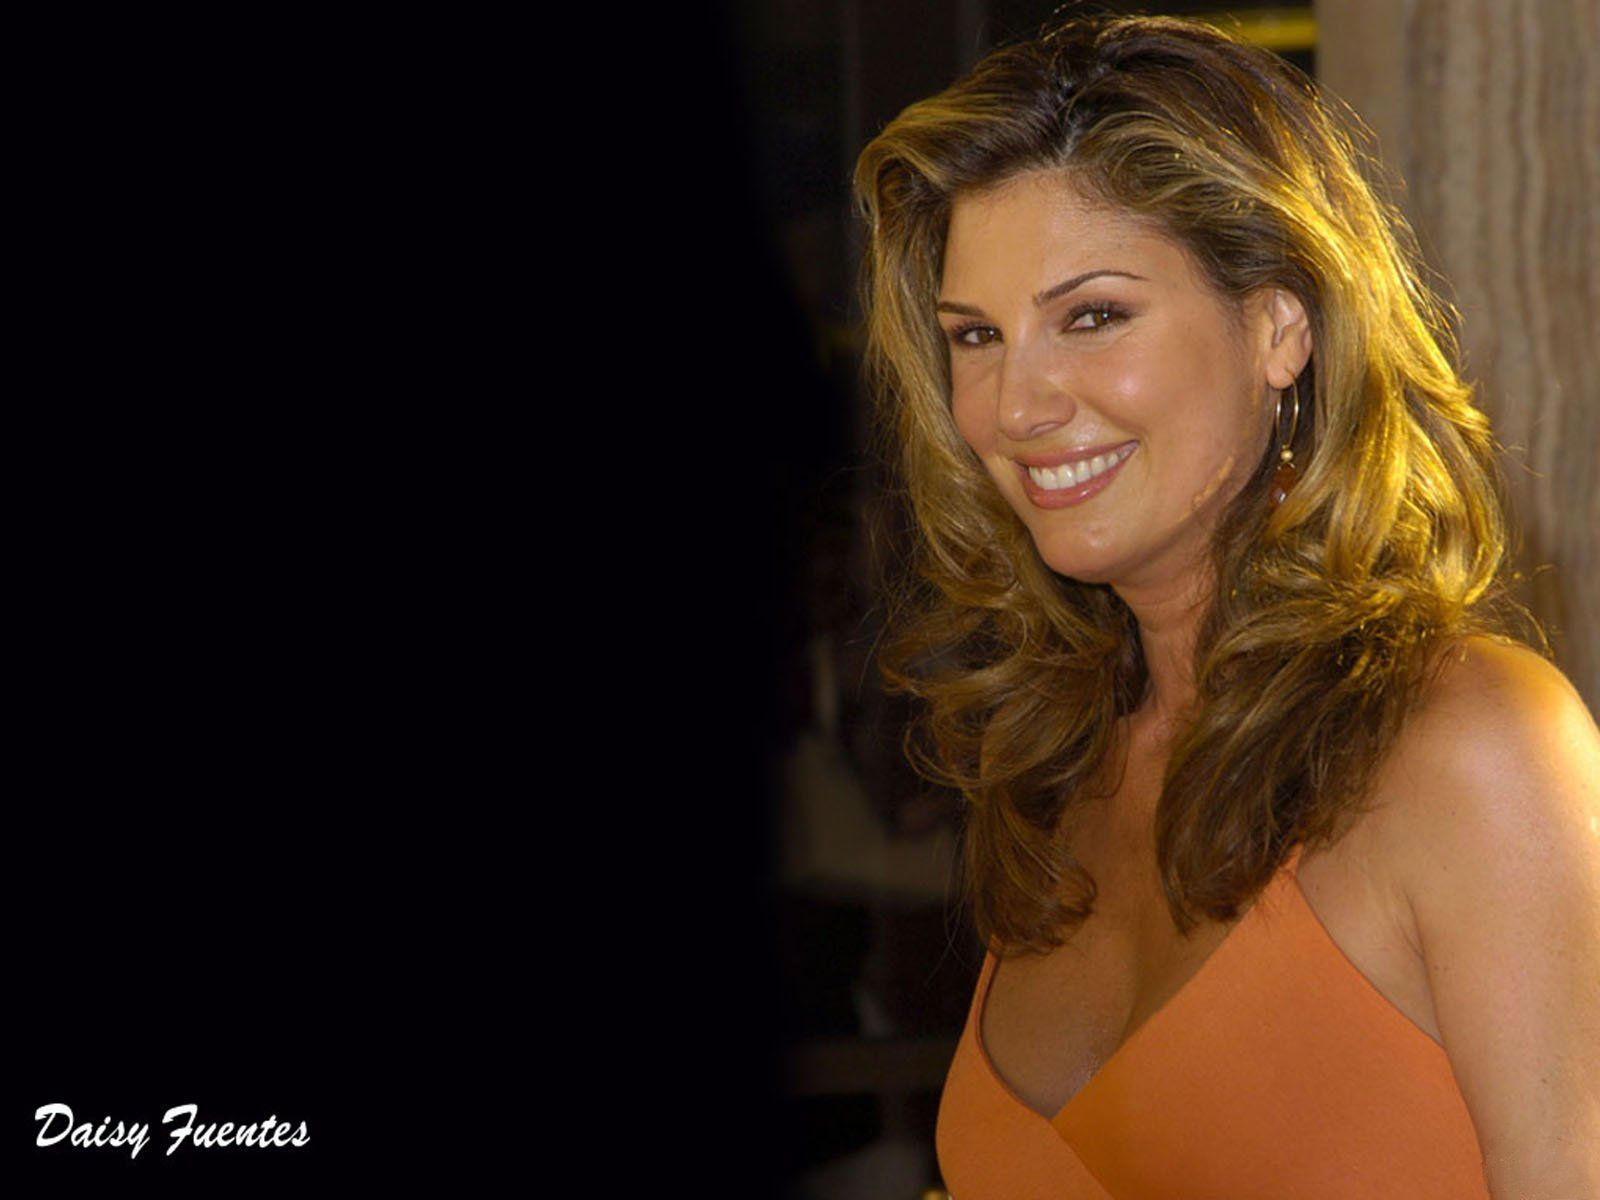 1600x1200 - Daisy Fuentes Wallpapers 12